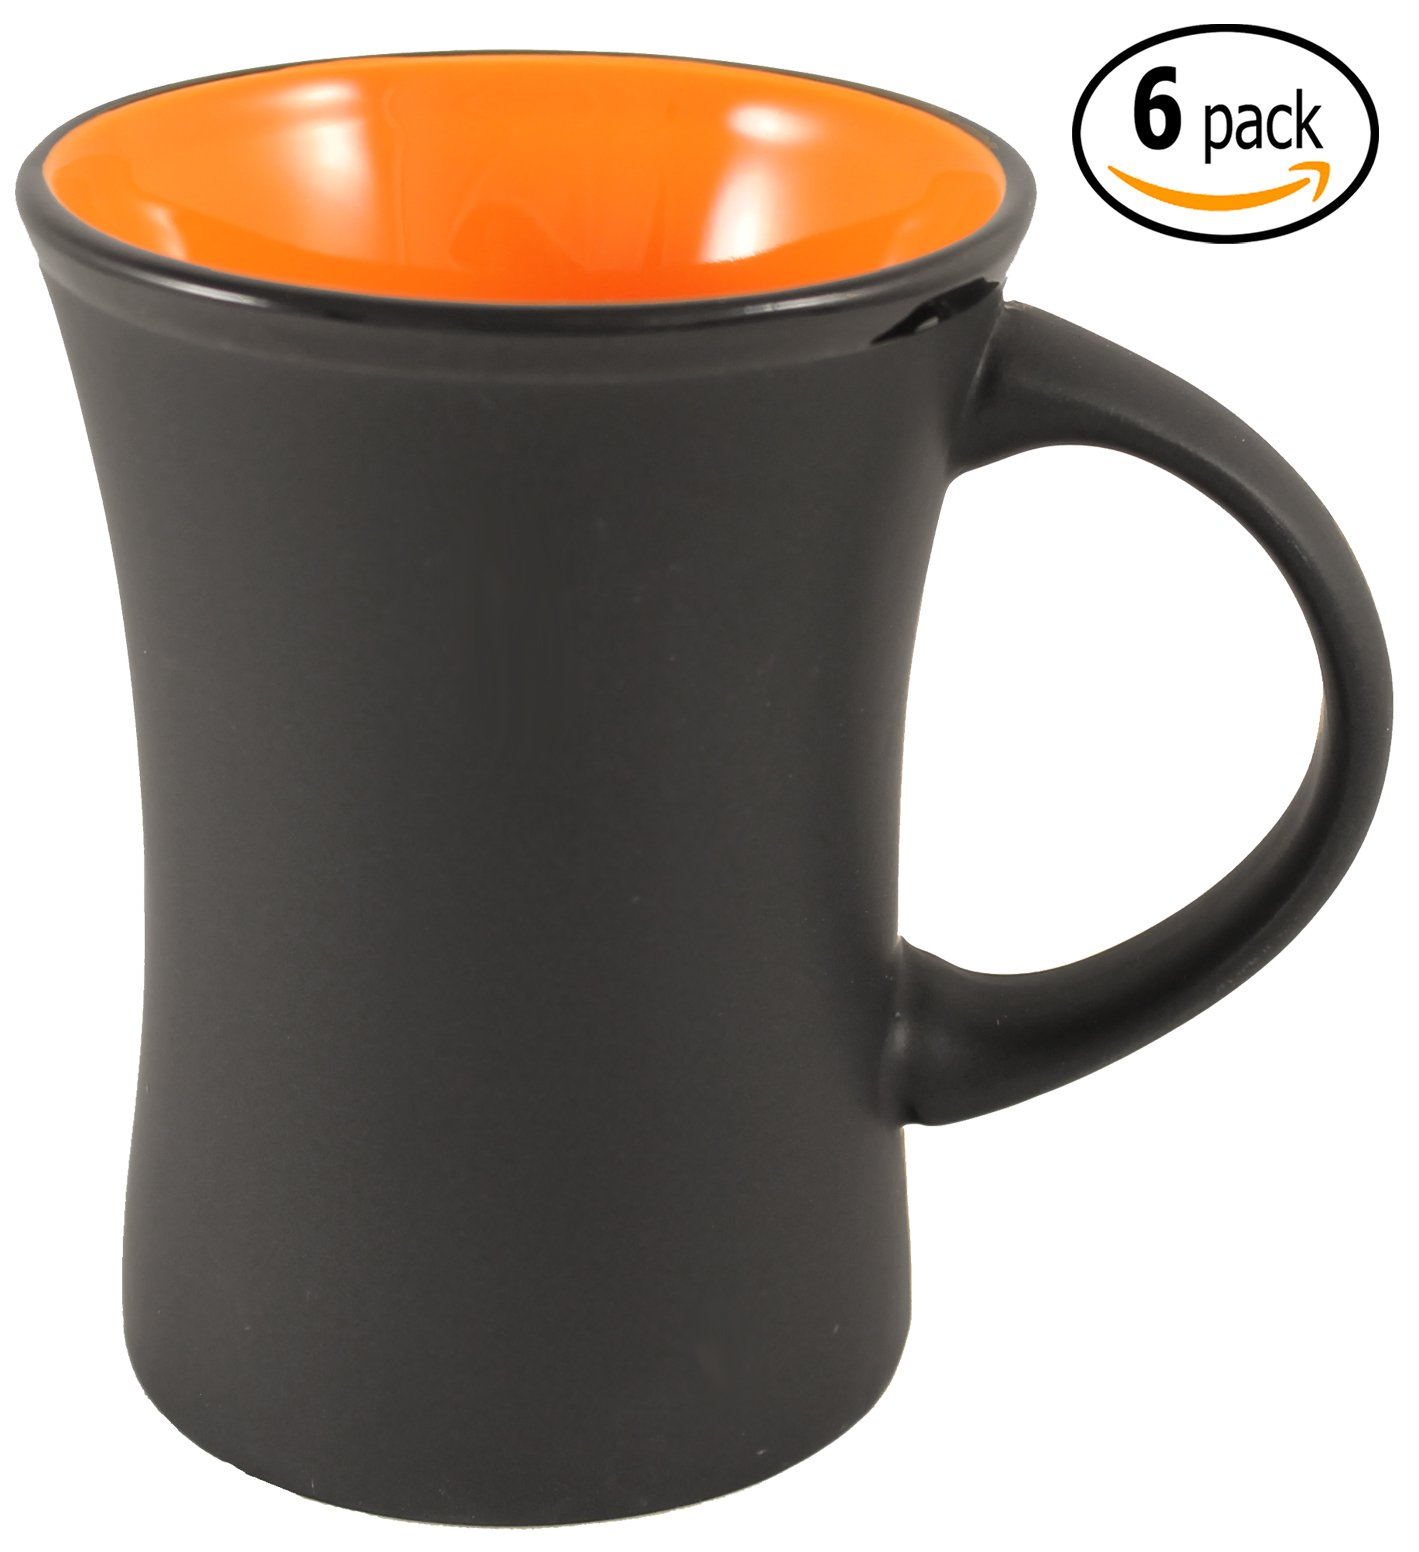 ITI Ceramic Flared Hilo Coffee Mugs with Pan Scraper, 9 Ounce (6-Pack, Orange)